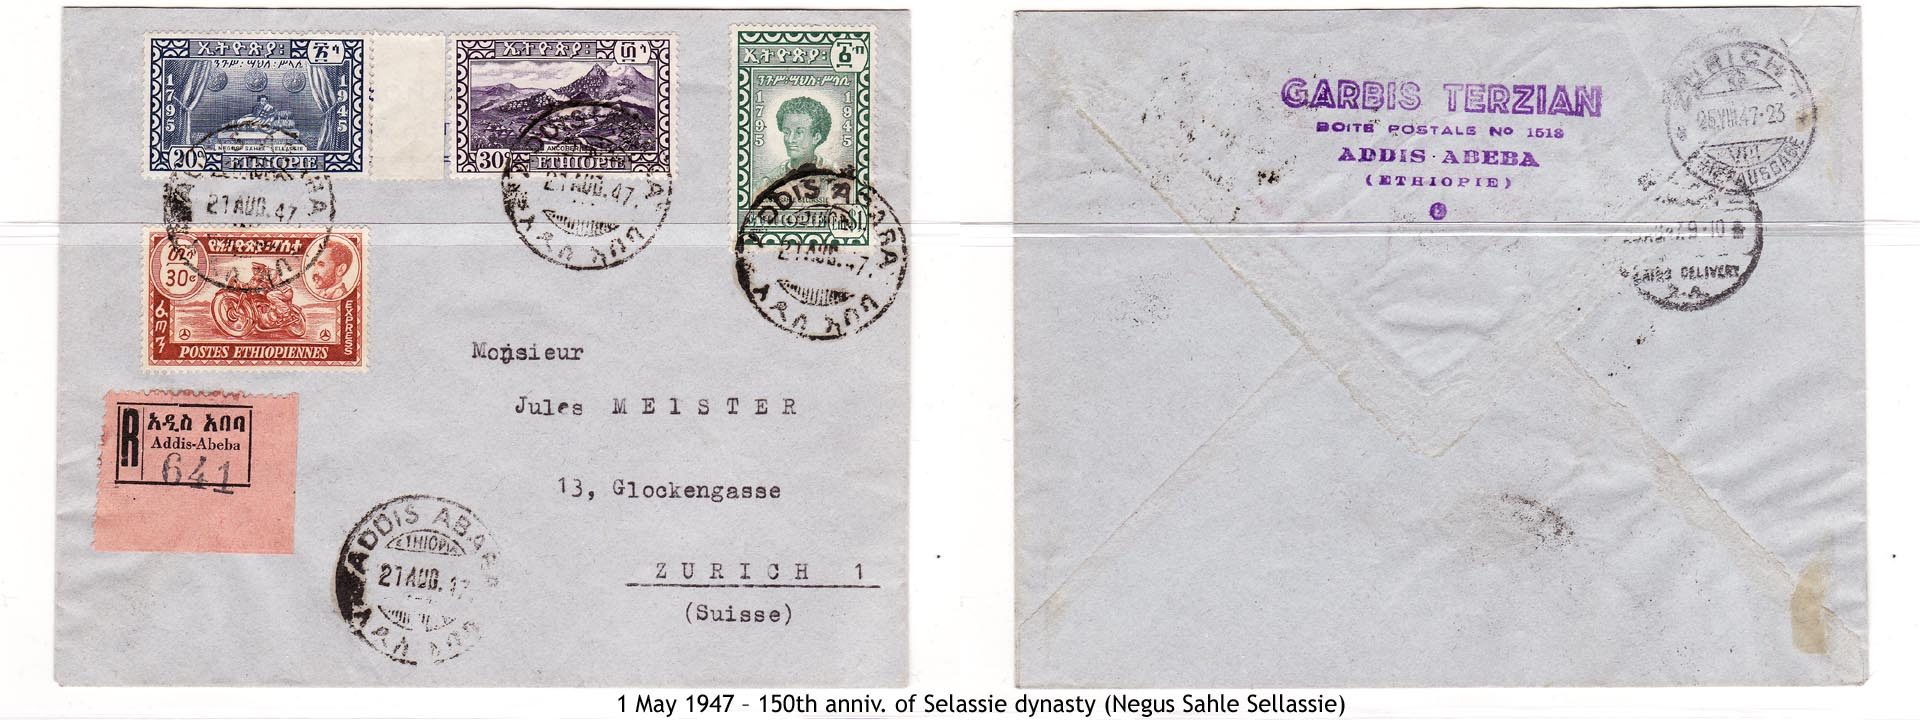 19470501 – 150th anniv. of Selassie dynasty (Negus Sahle Sellassie)